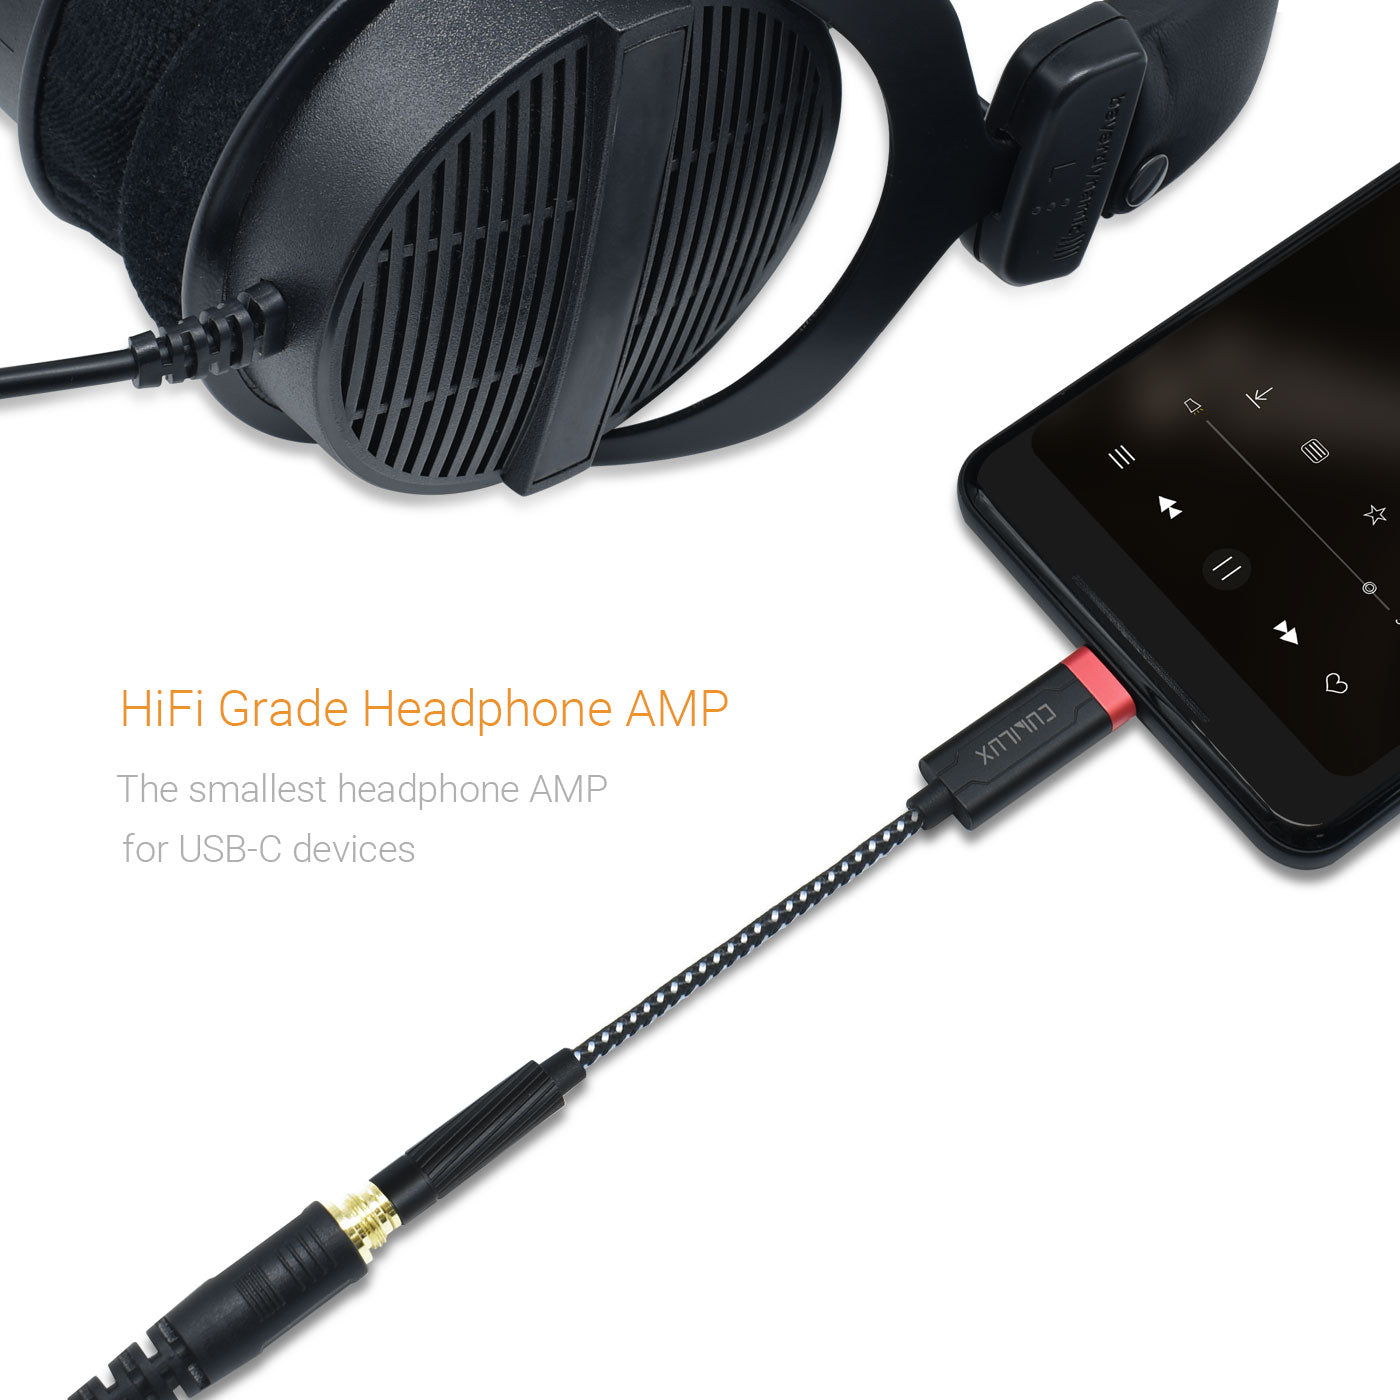 Portable HiFi Audio Solution for USB-C Devices